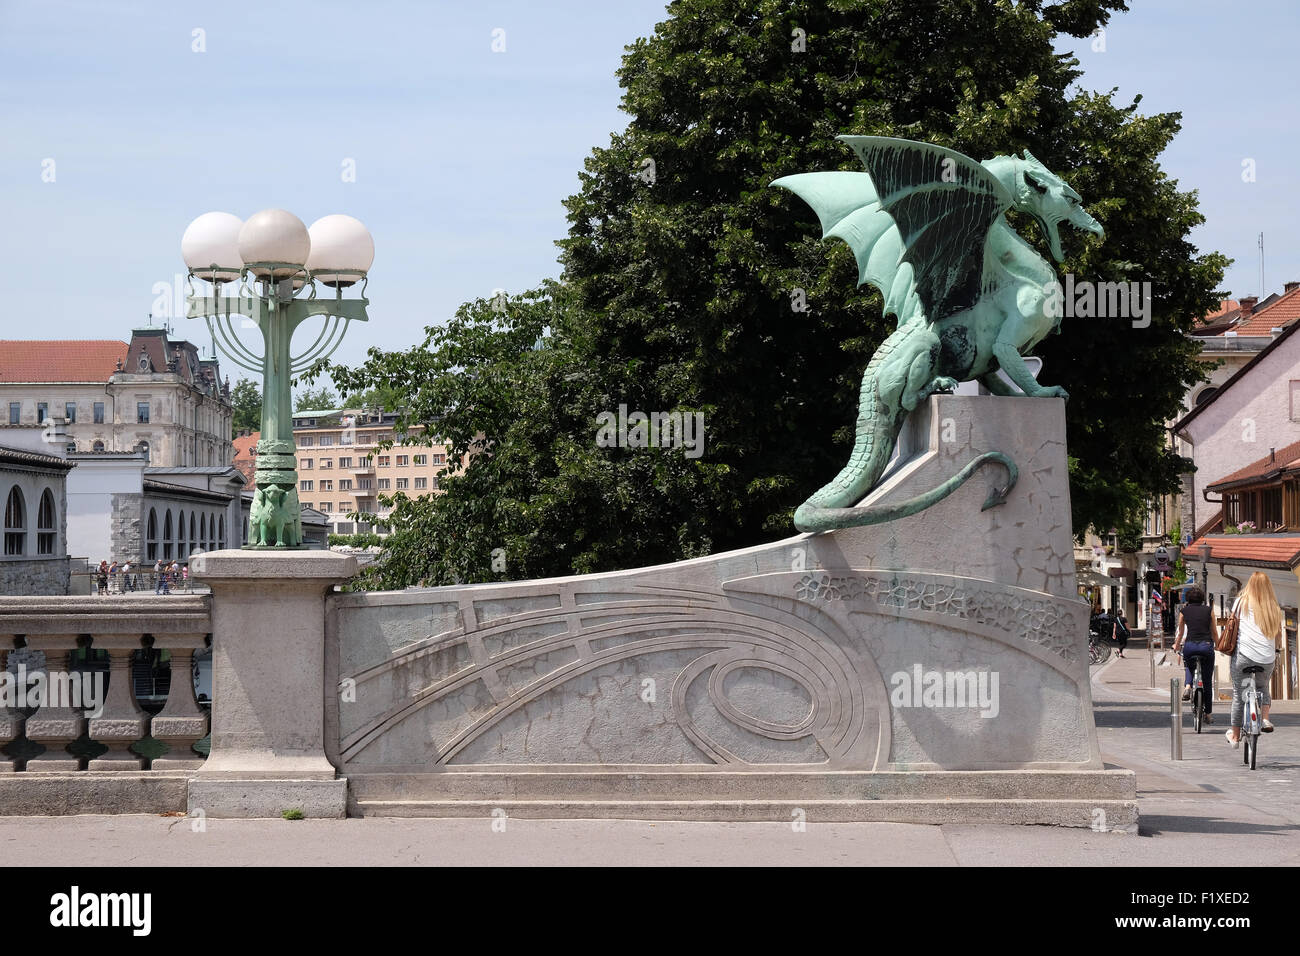 Dragon symbol of the slovenian capital on the dragon bridge in dragon symbol of the slovenian capital on the dragon bridge in ljubljana slovenia biocorpaavc Image collections